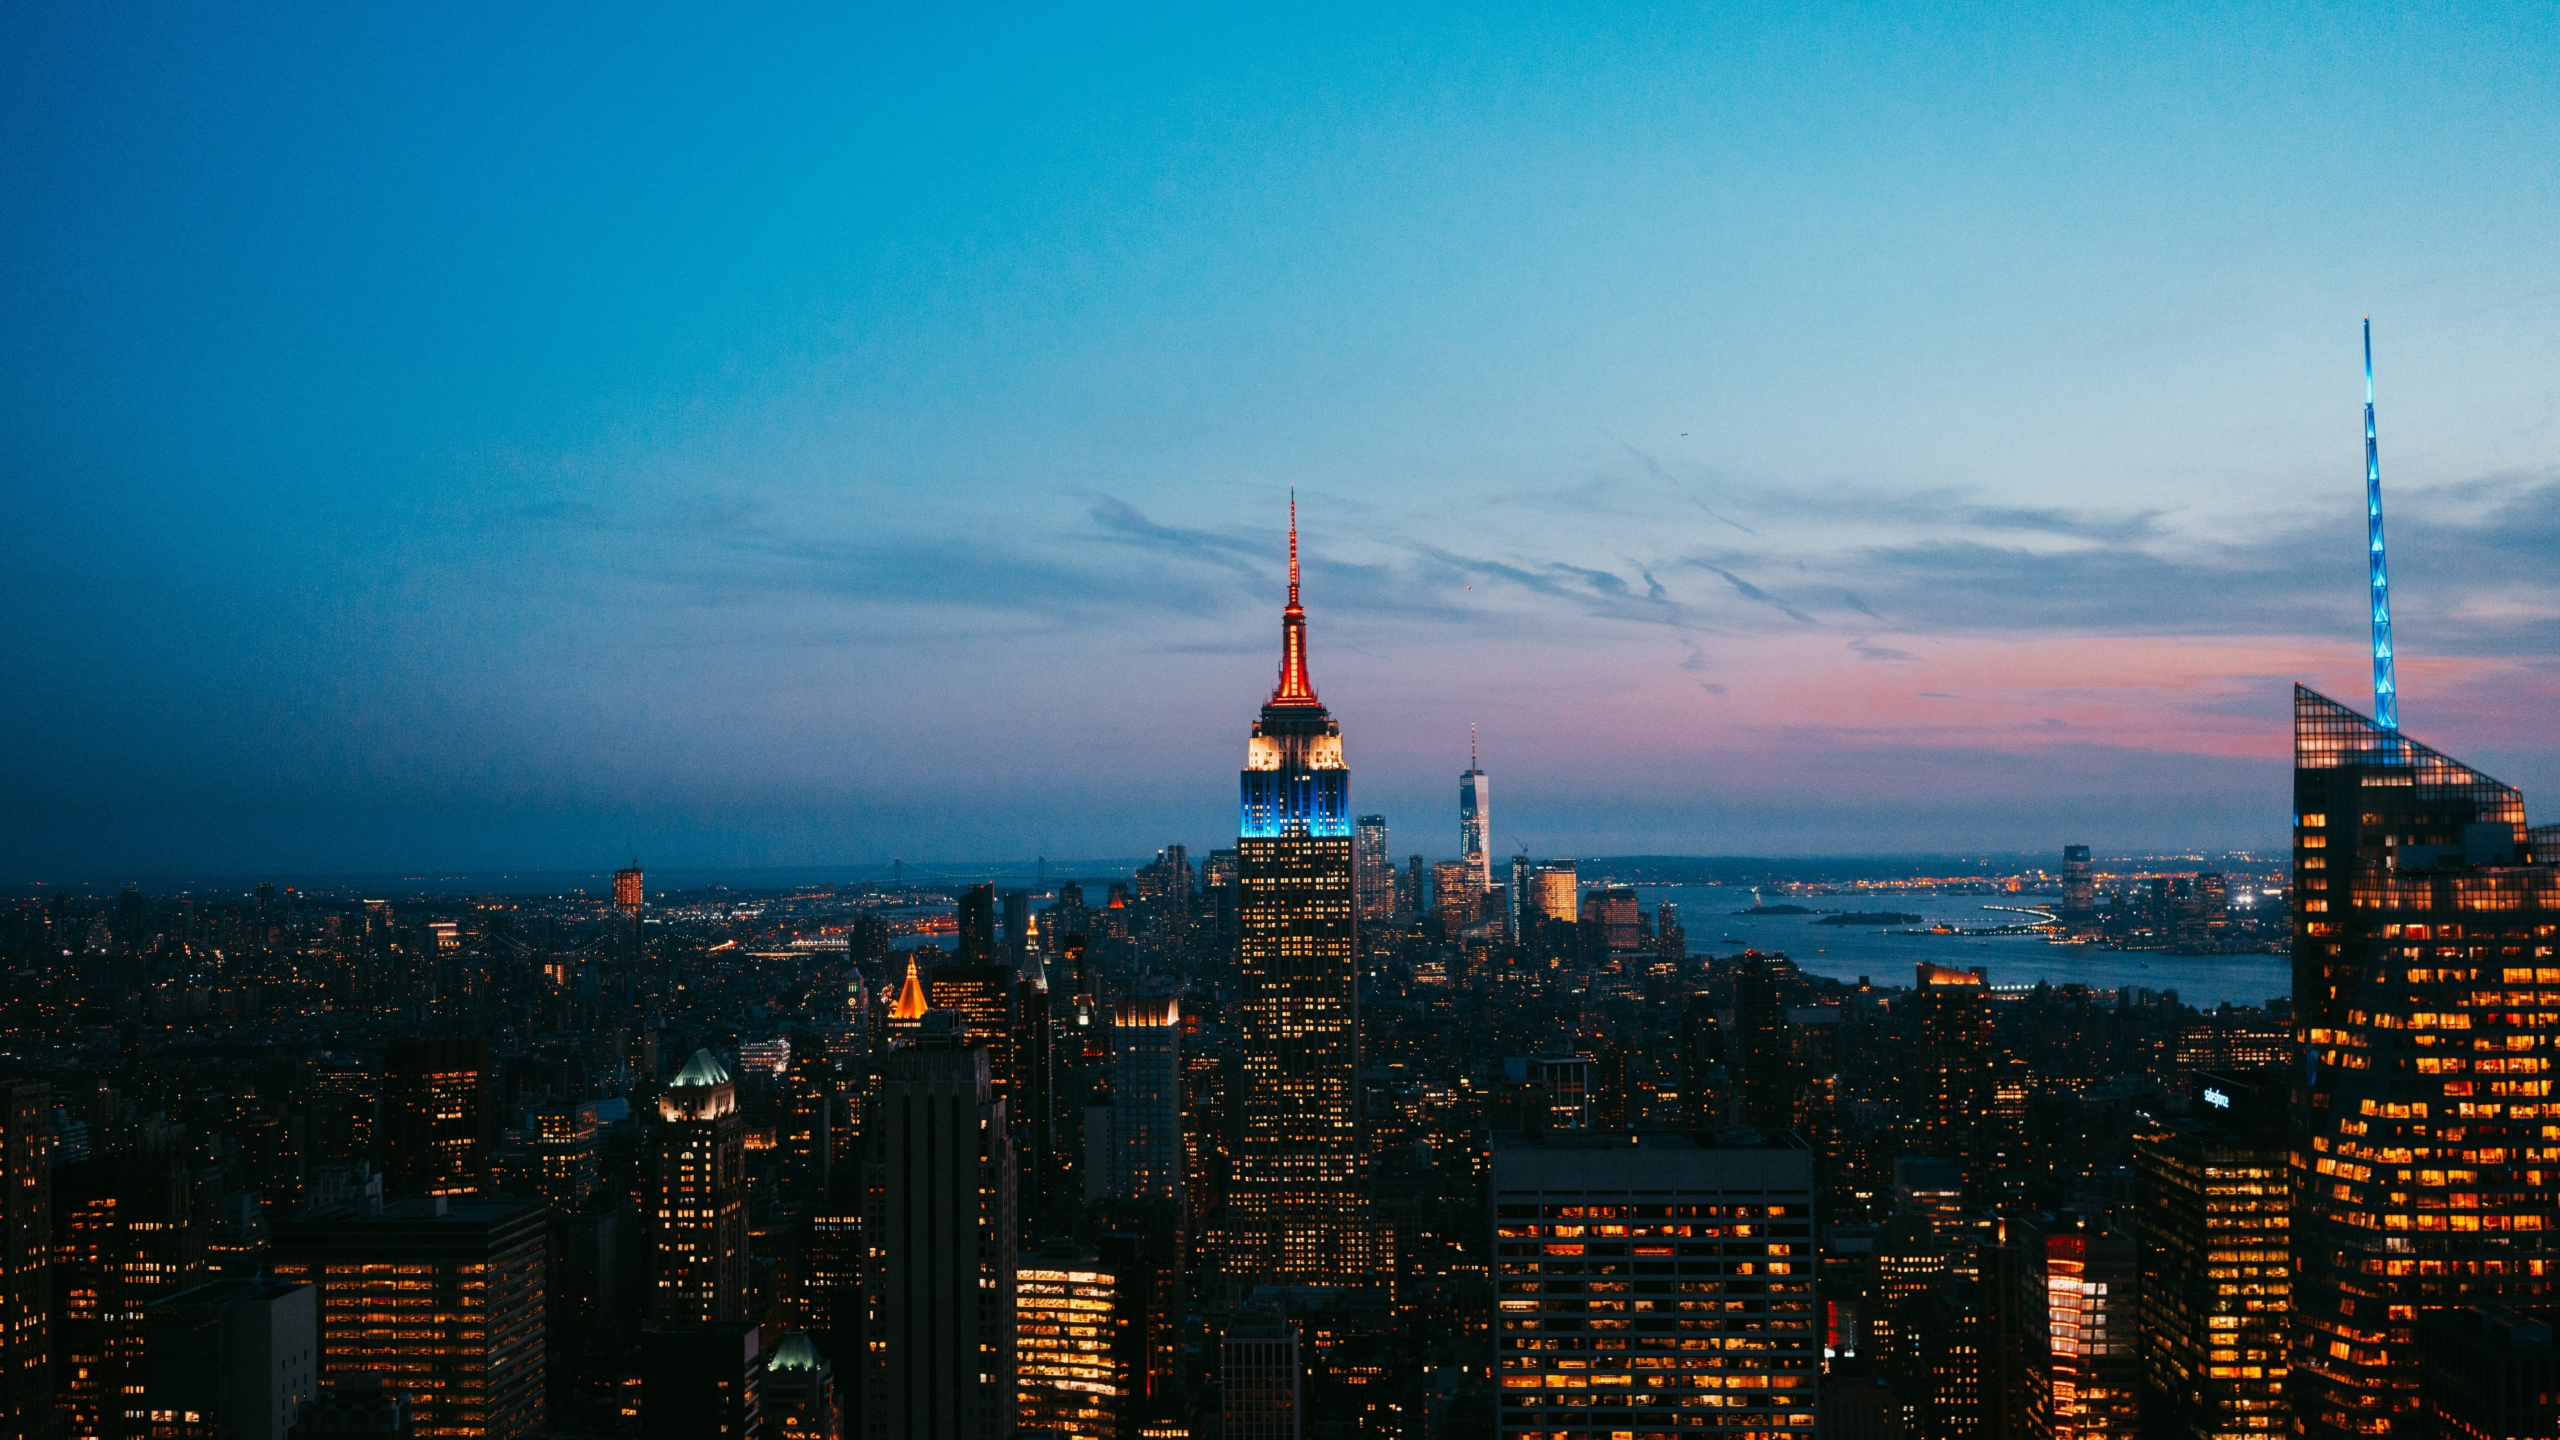 New york, skyscrapers, night, city, buildings, empire state building, 2560x1440 wallpaper